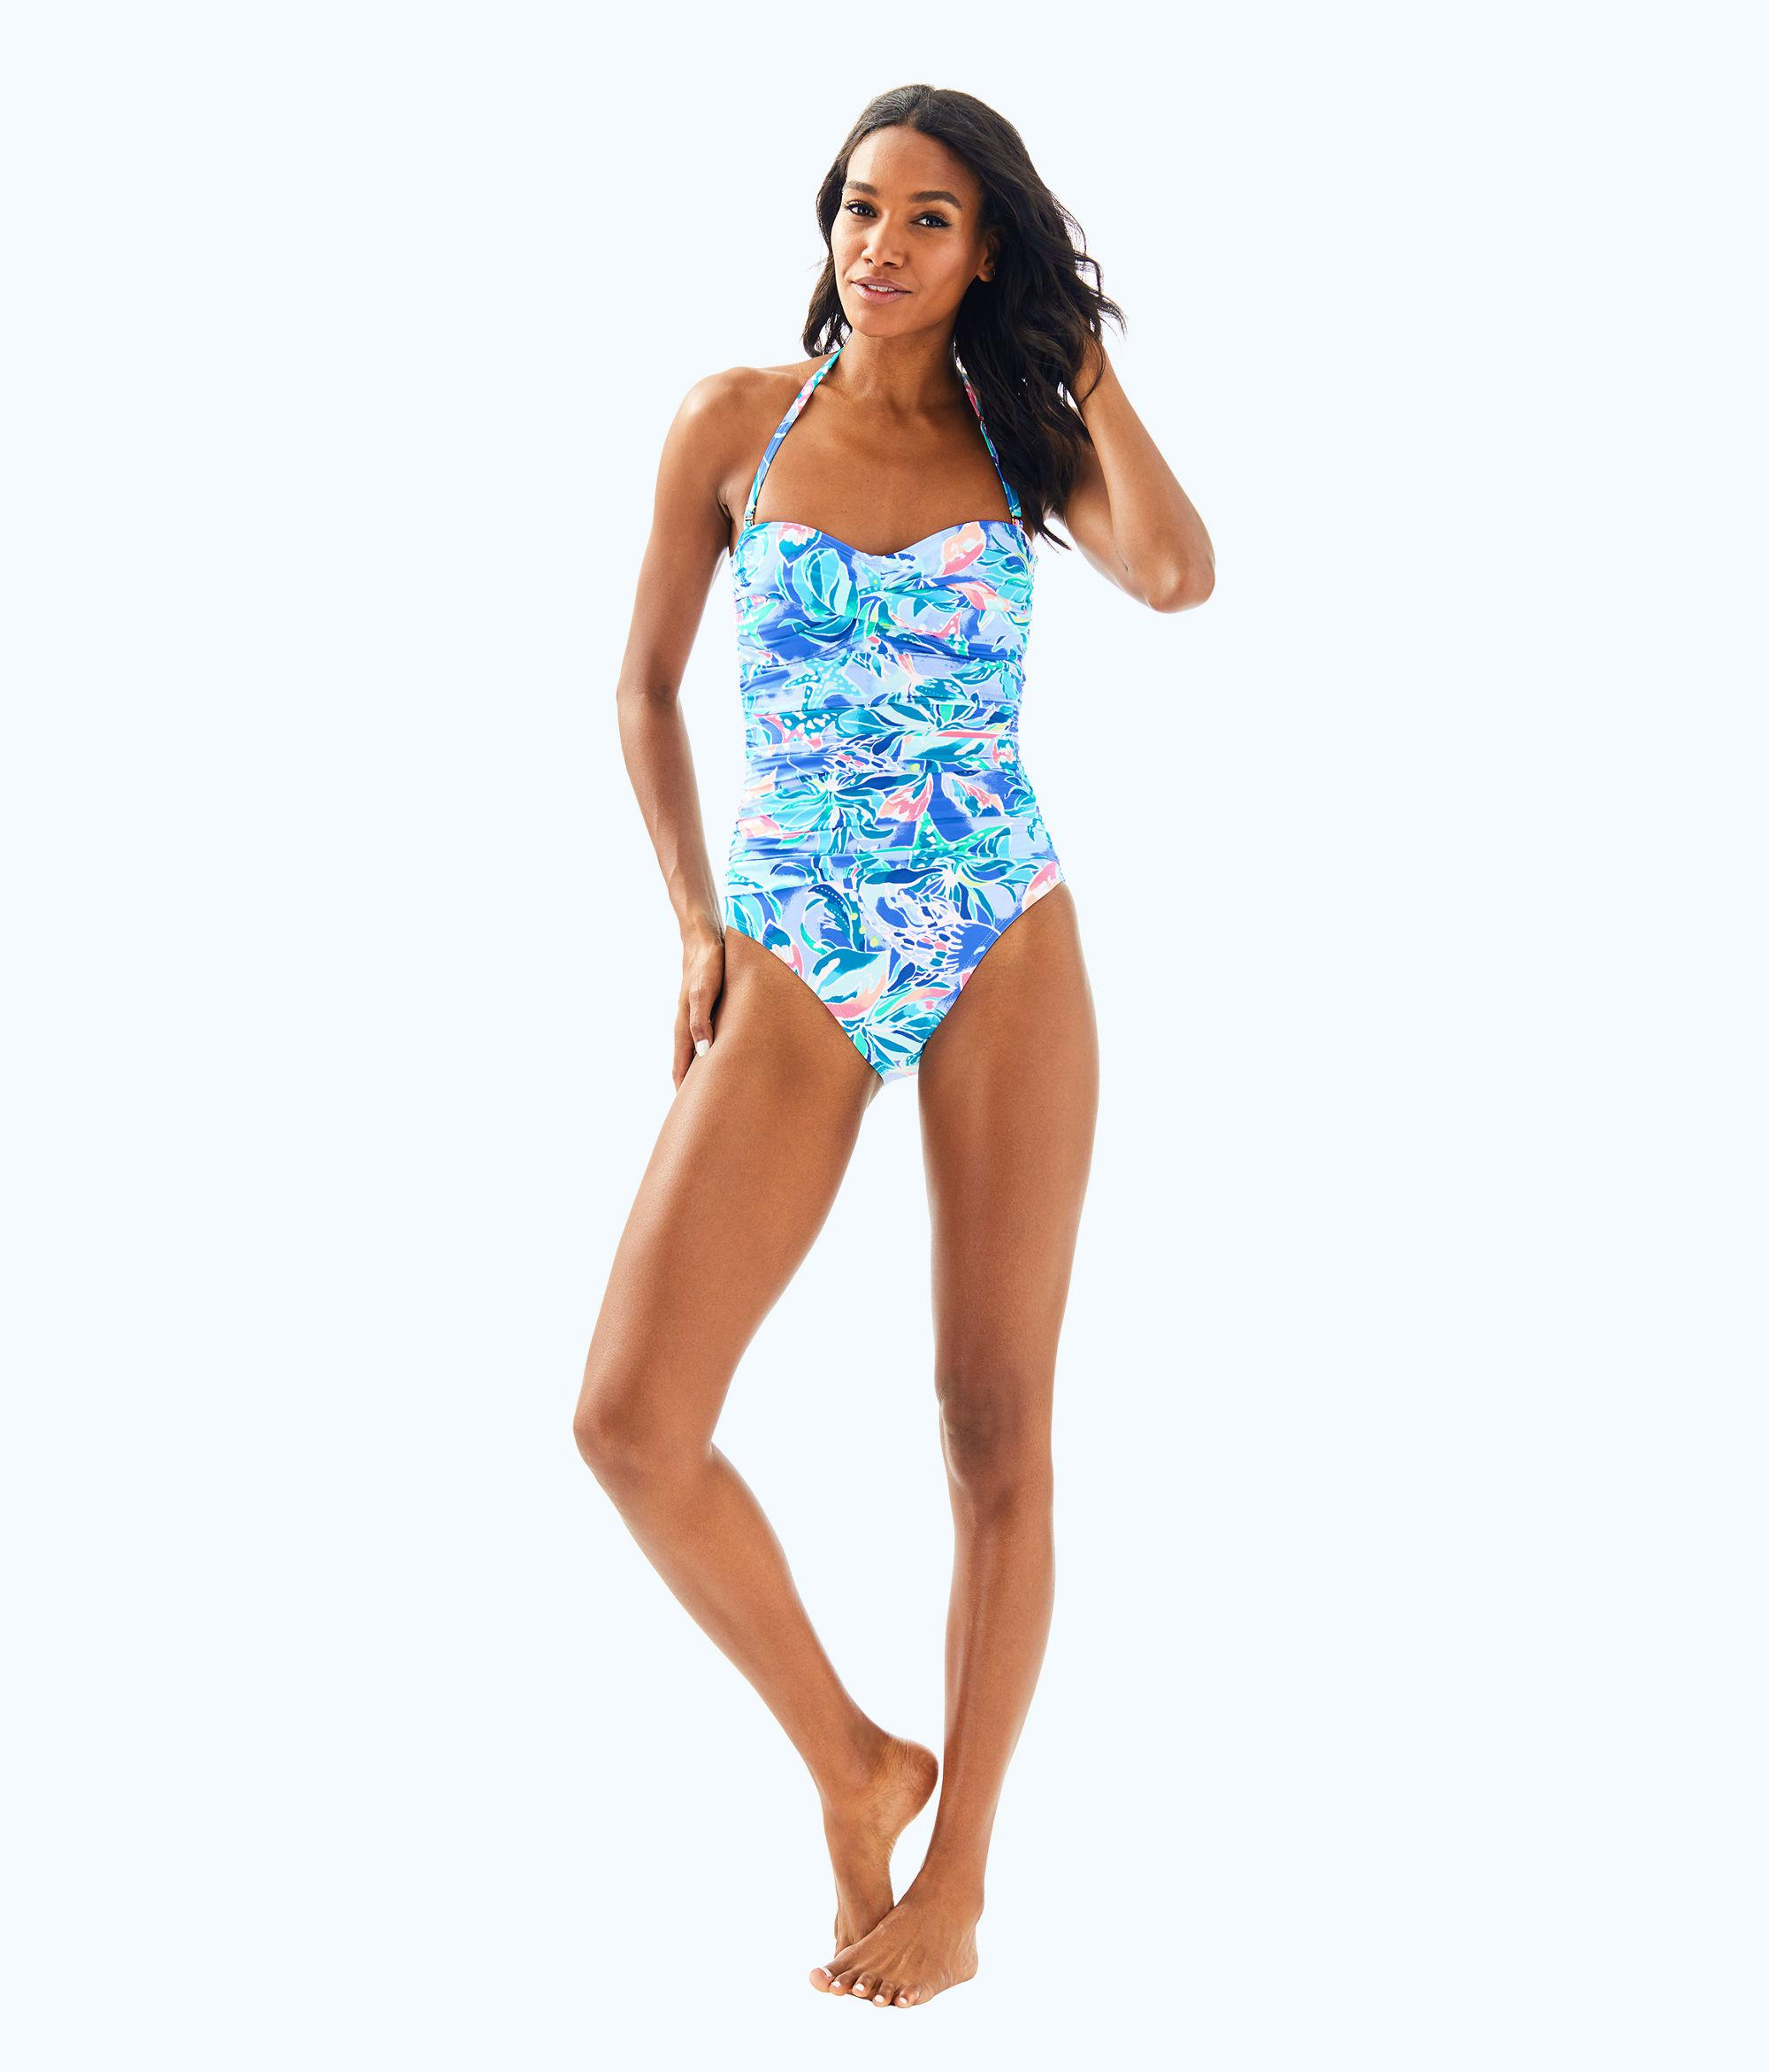 a0f7c7e2bafc1 Lyst - Lilly Pulitzer Flamenco One Piece Swimsuit in Blue